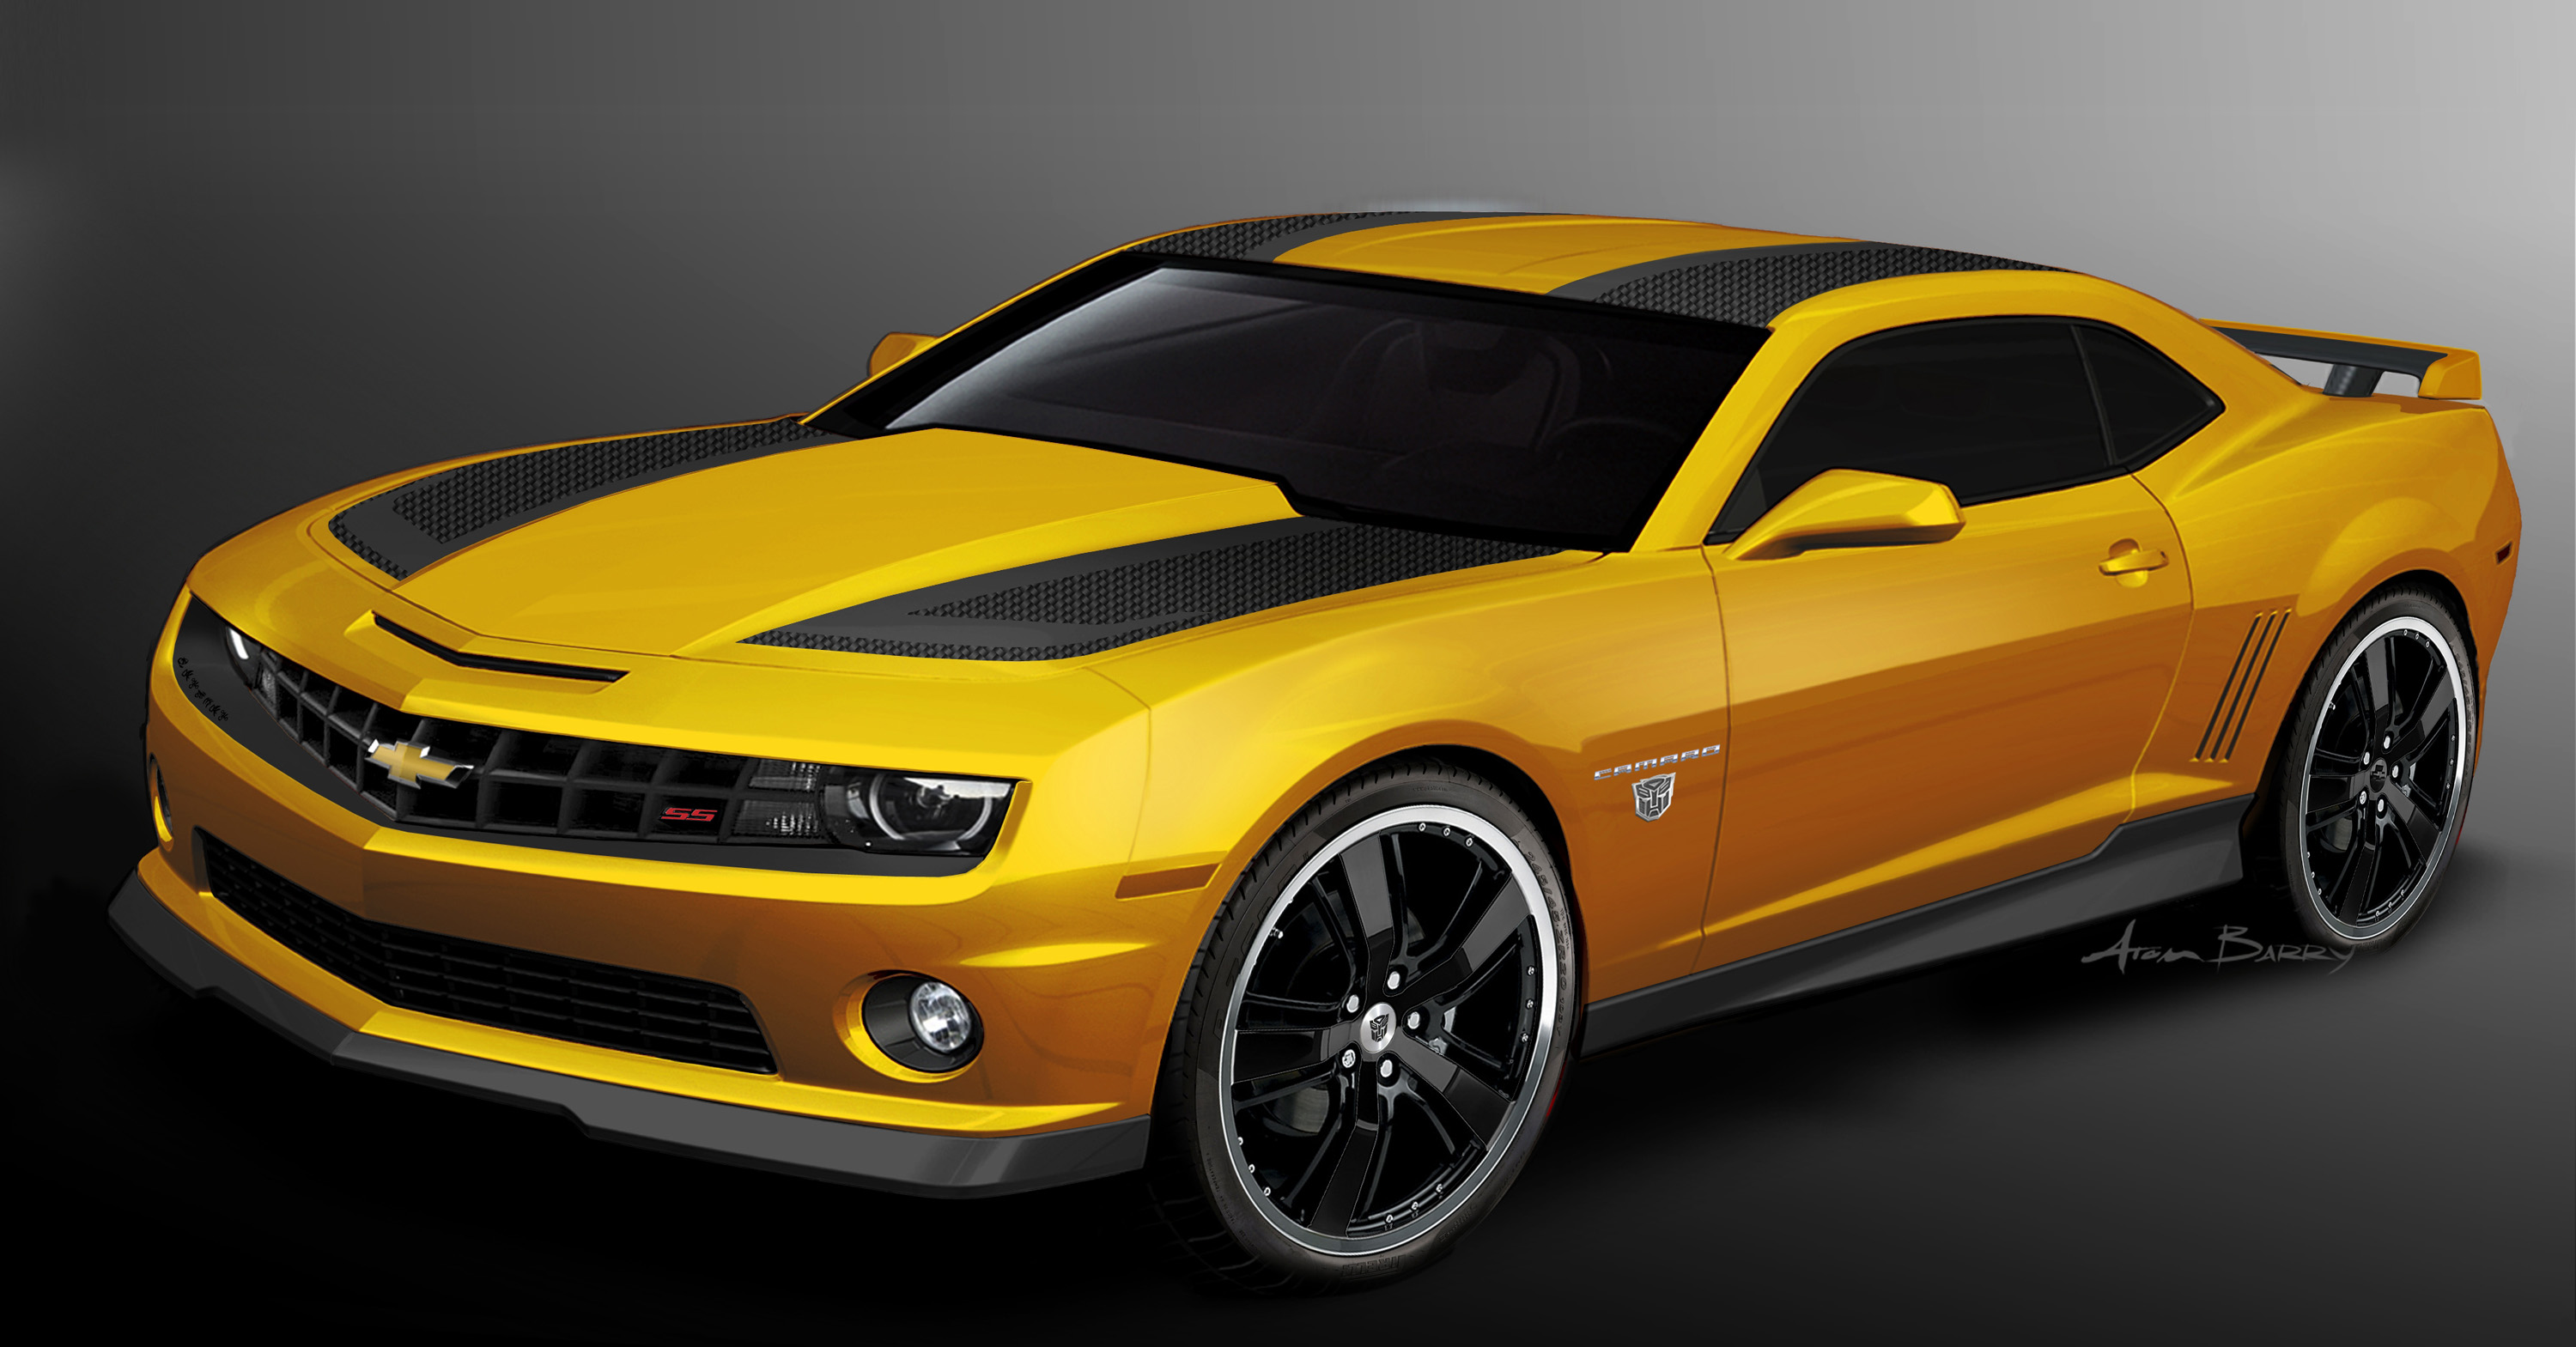 The Interior Of 2017 Transformers Special Edition Camaro Features Black Leather Seating And Yellow Accent Sching On Instrument Panel